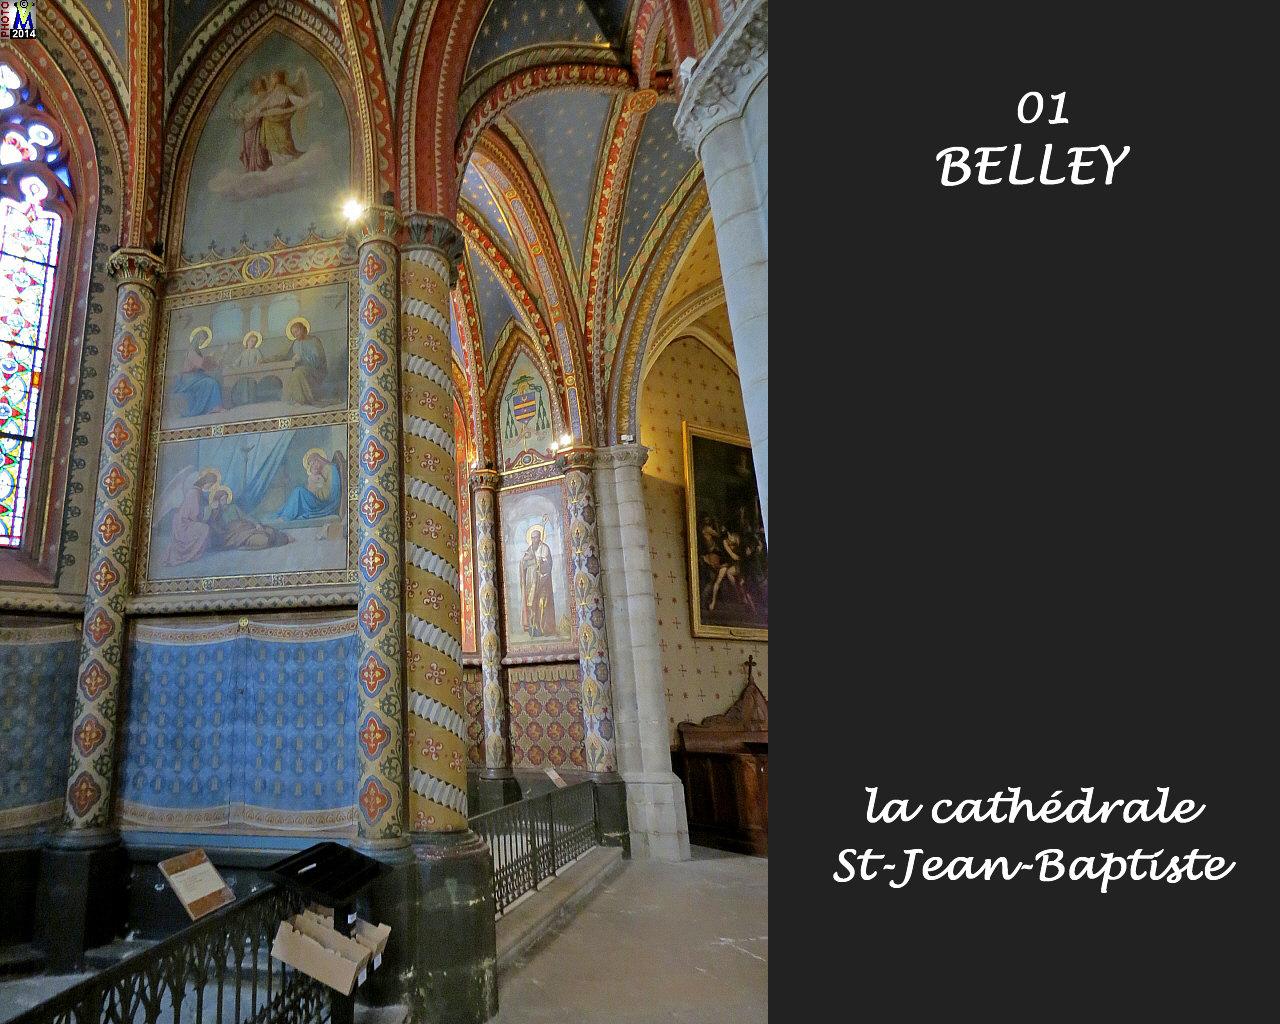 01BELLEY_cathedrale_214.jpg